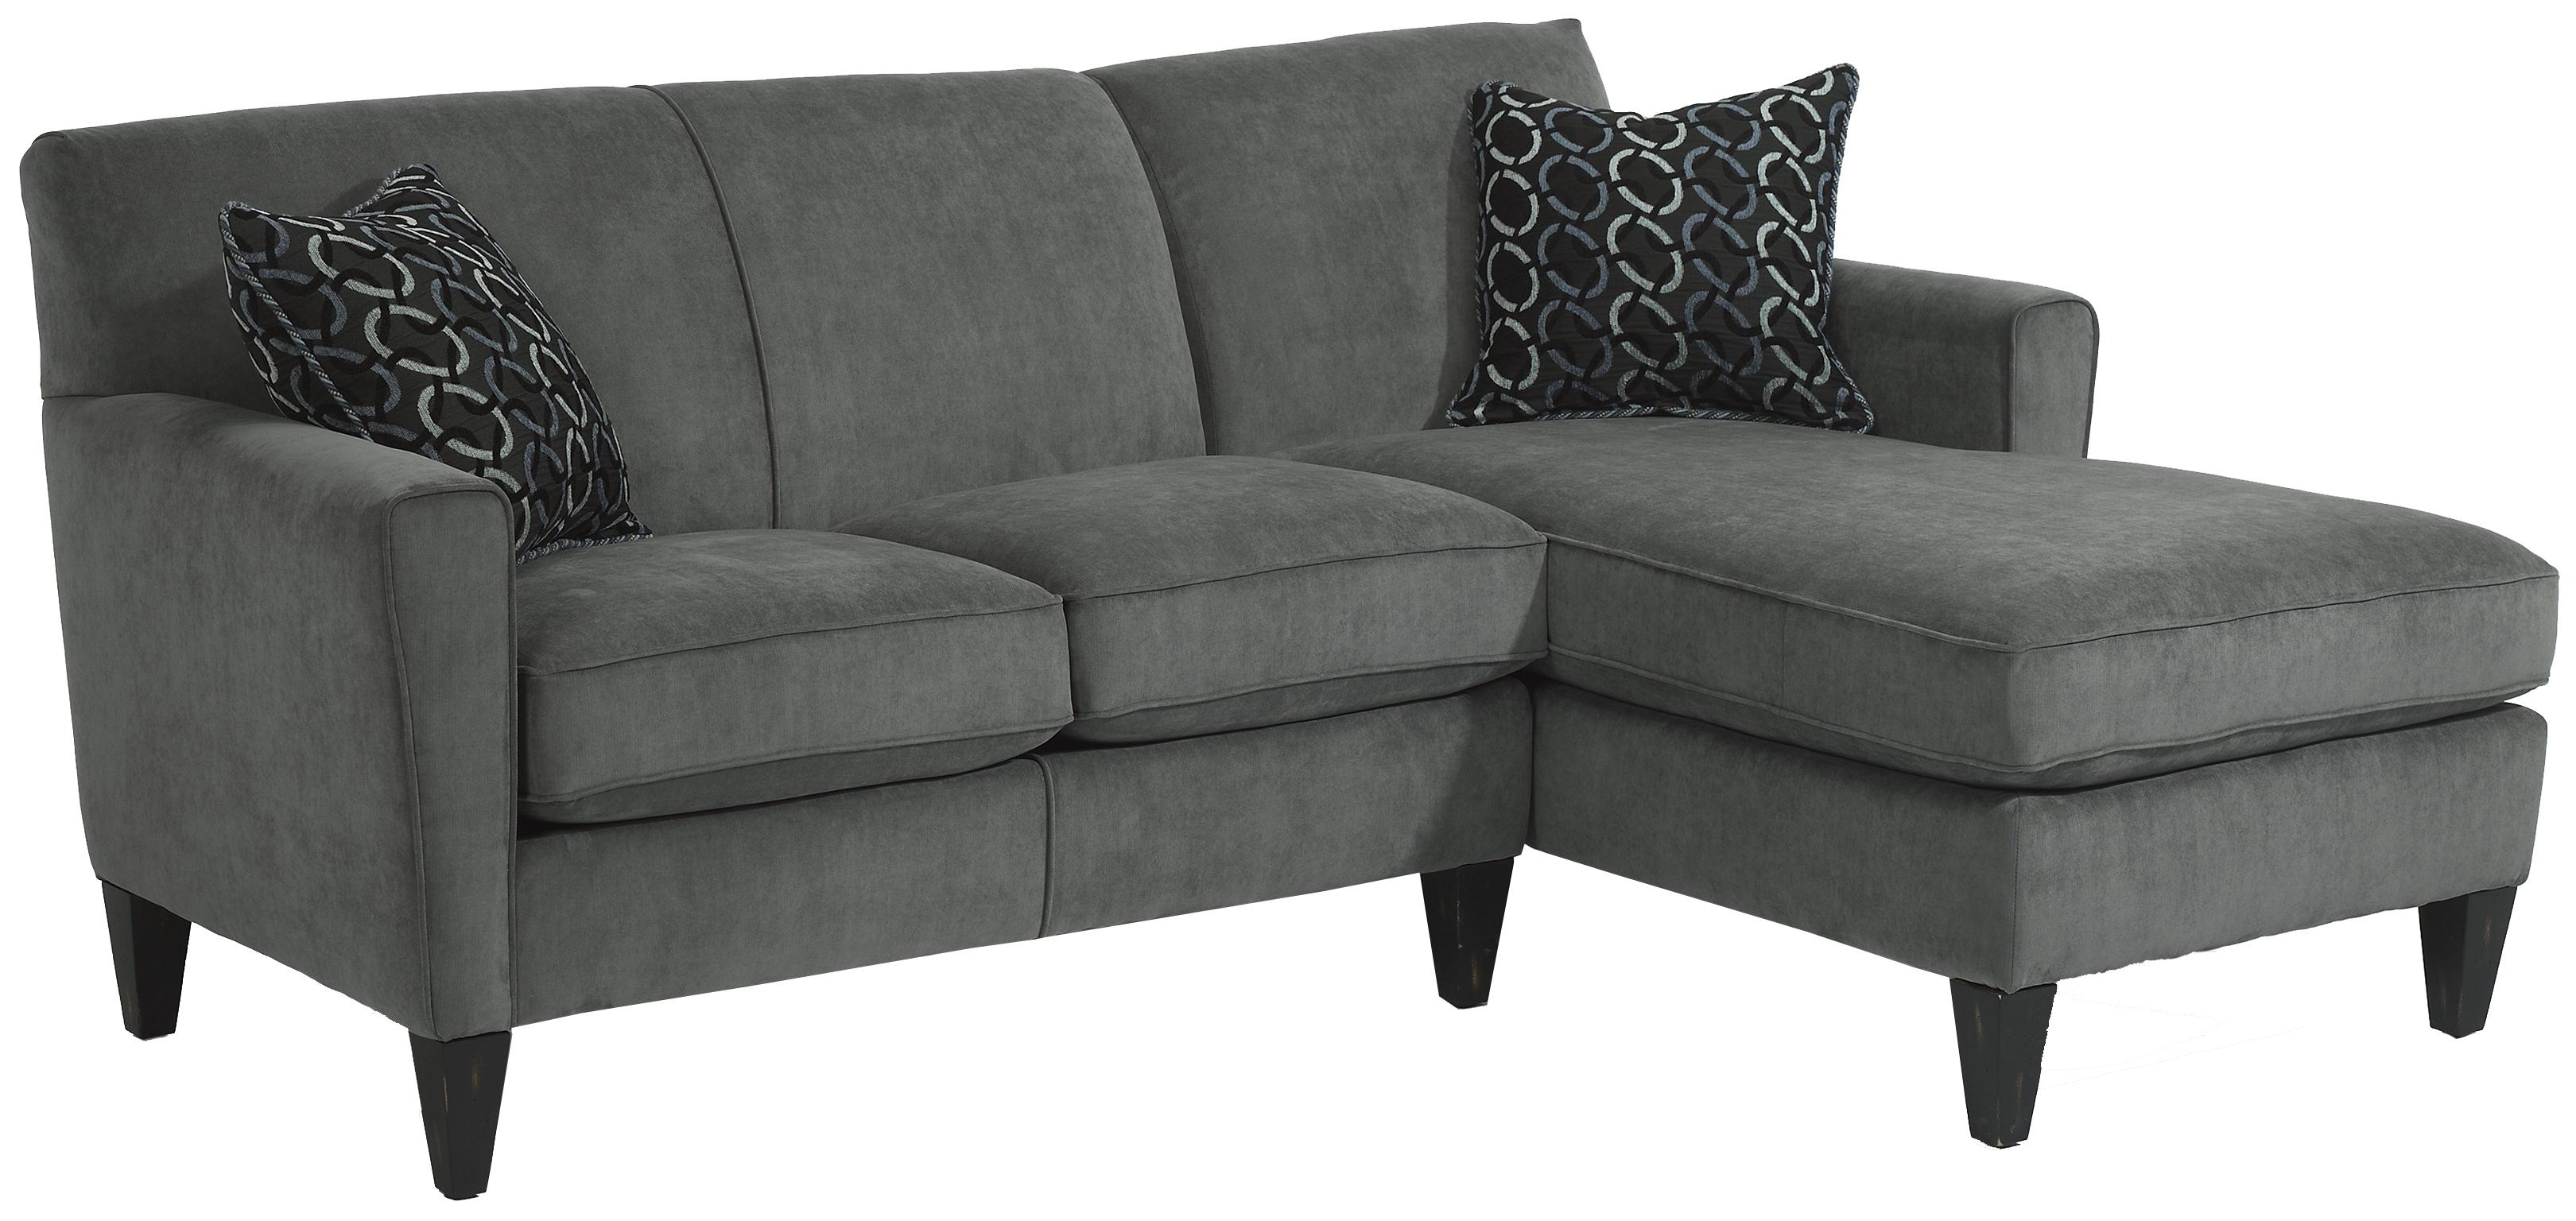 Flexsteel Digby Contemporary Sectional Sofa With Raf Chaise - Ahfa pertaining to Norfolk Chocolate 3 Piece Sectionals With Raf Chaise (Image 11 of 30)